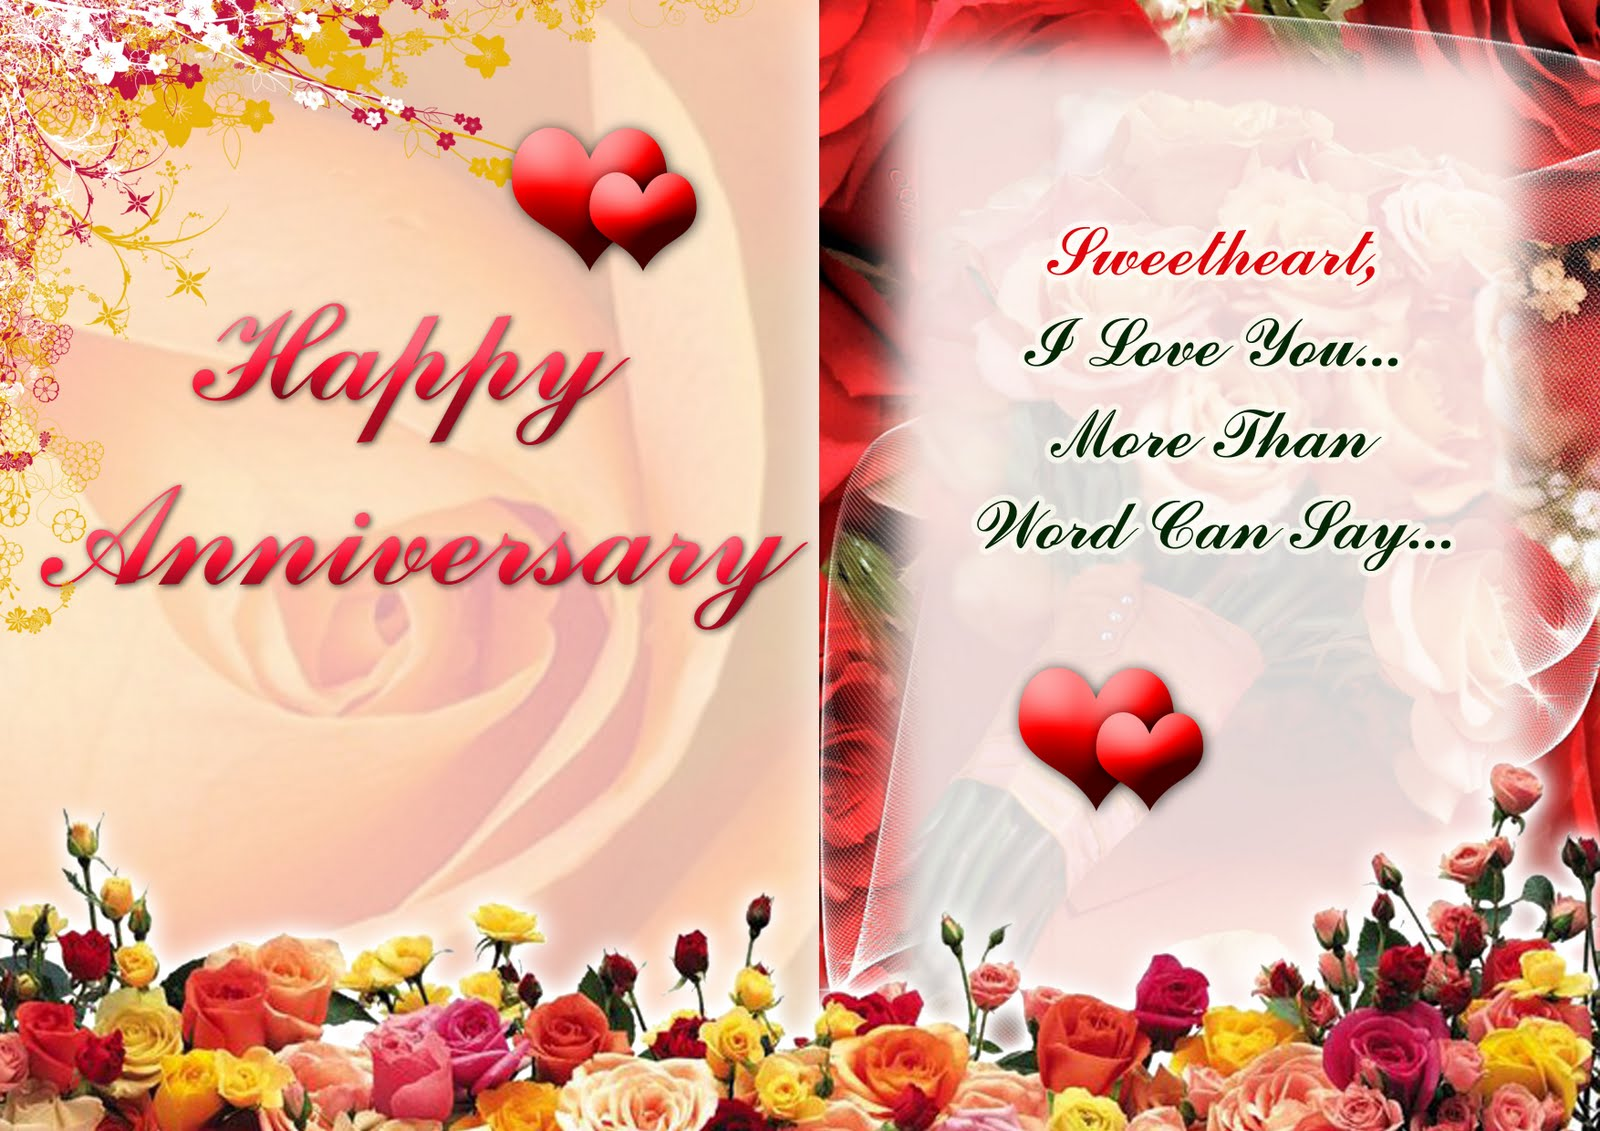 Anniversary Wishes Quotes My Interesting Talks With Friends Marriage Romantic